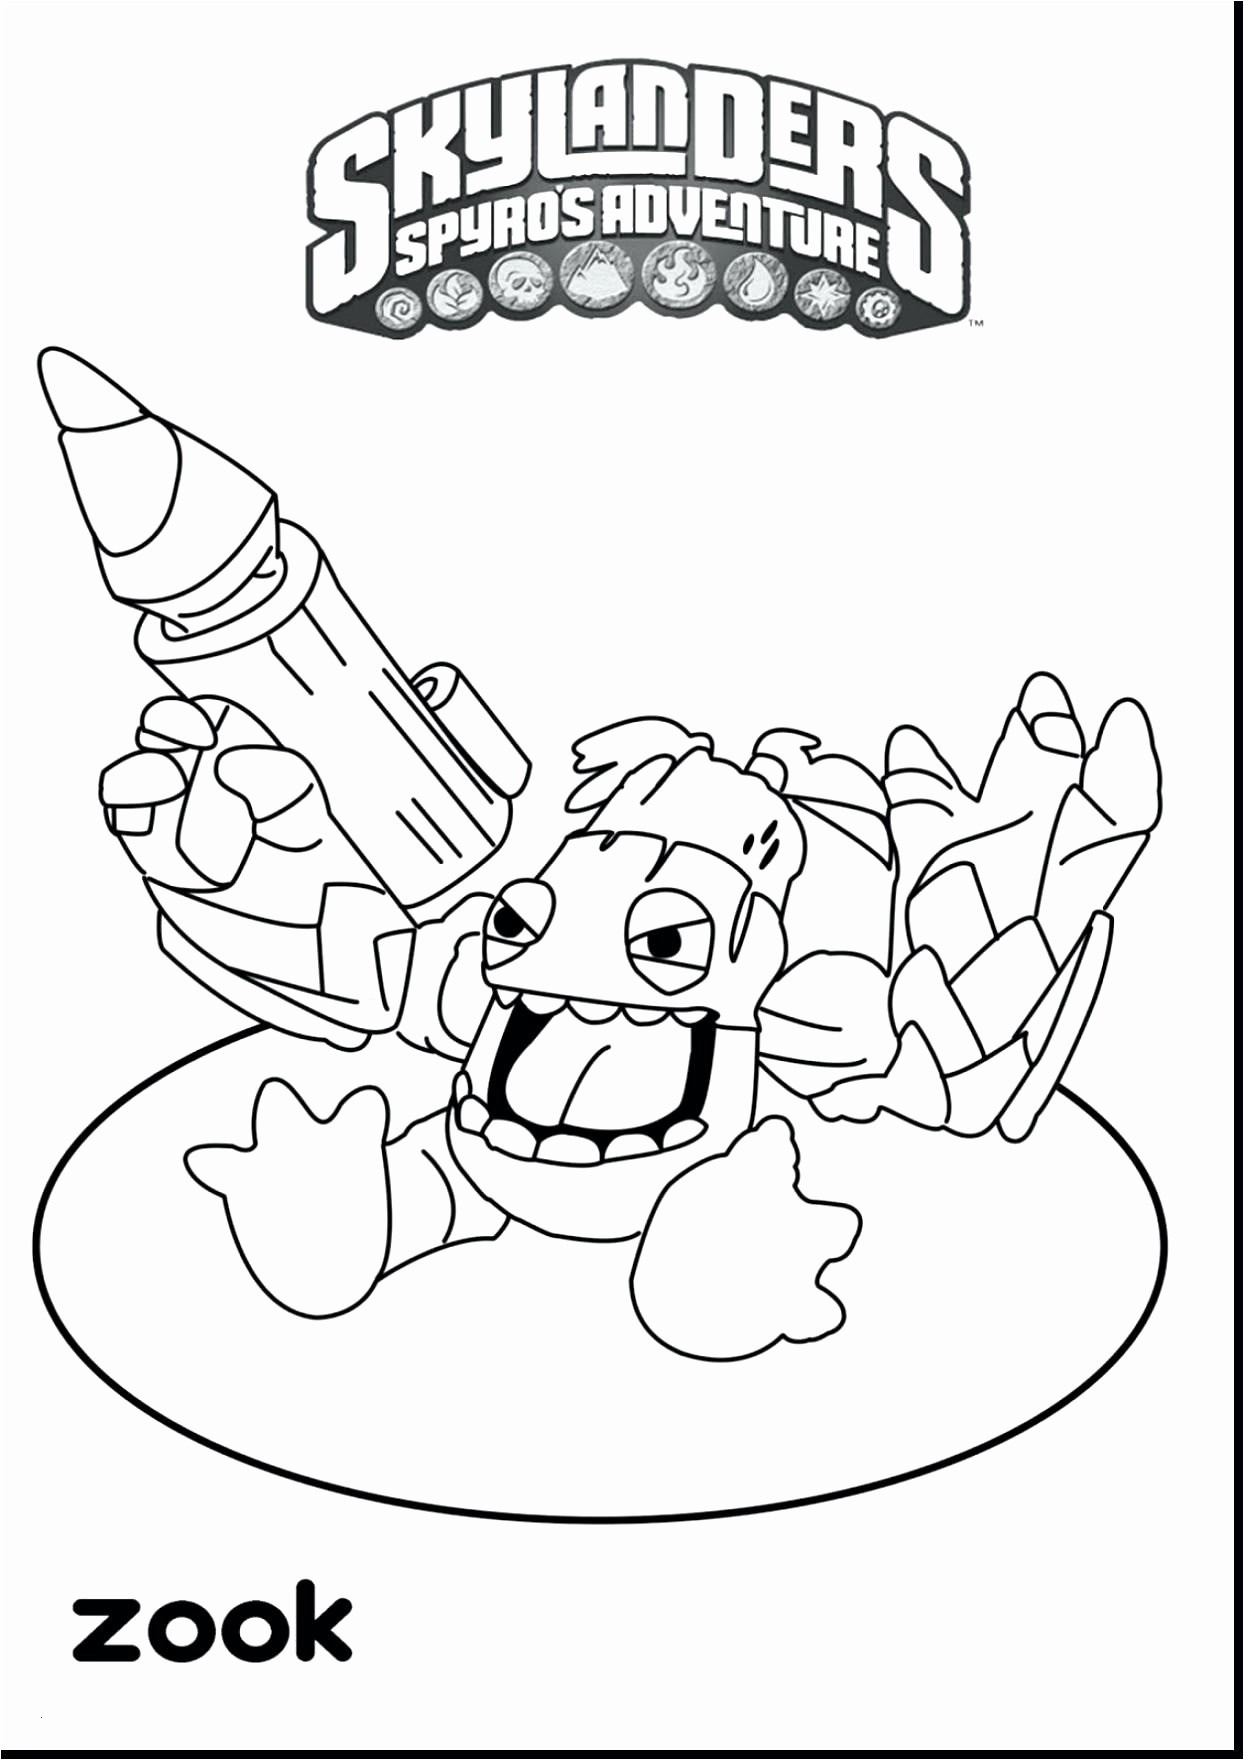 26 Mothers Day Coloring Pages Kids Download - Coloring Sheets